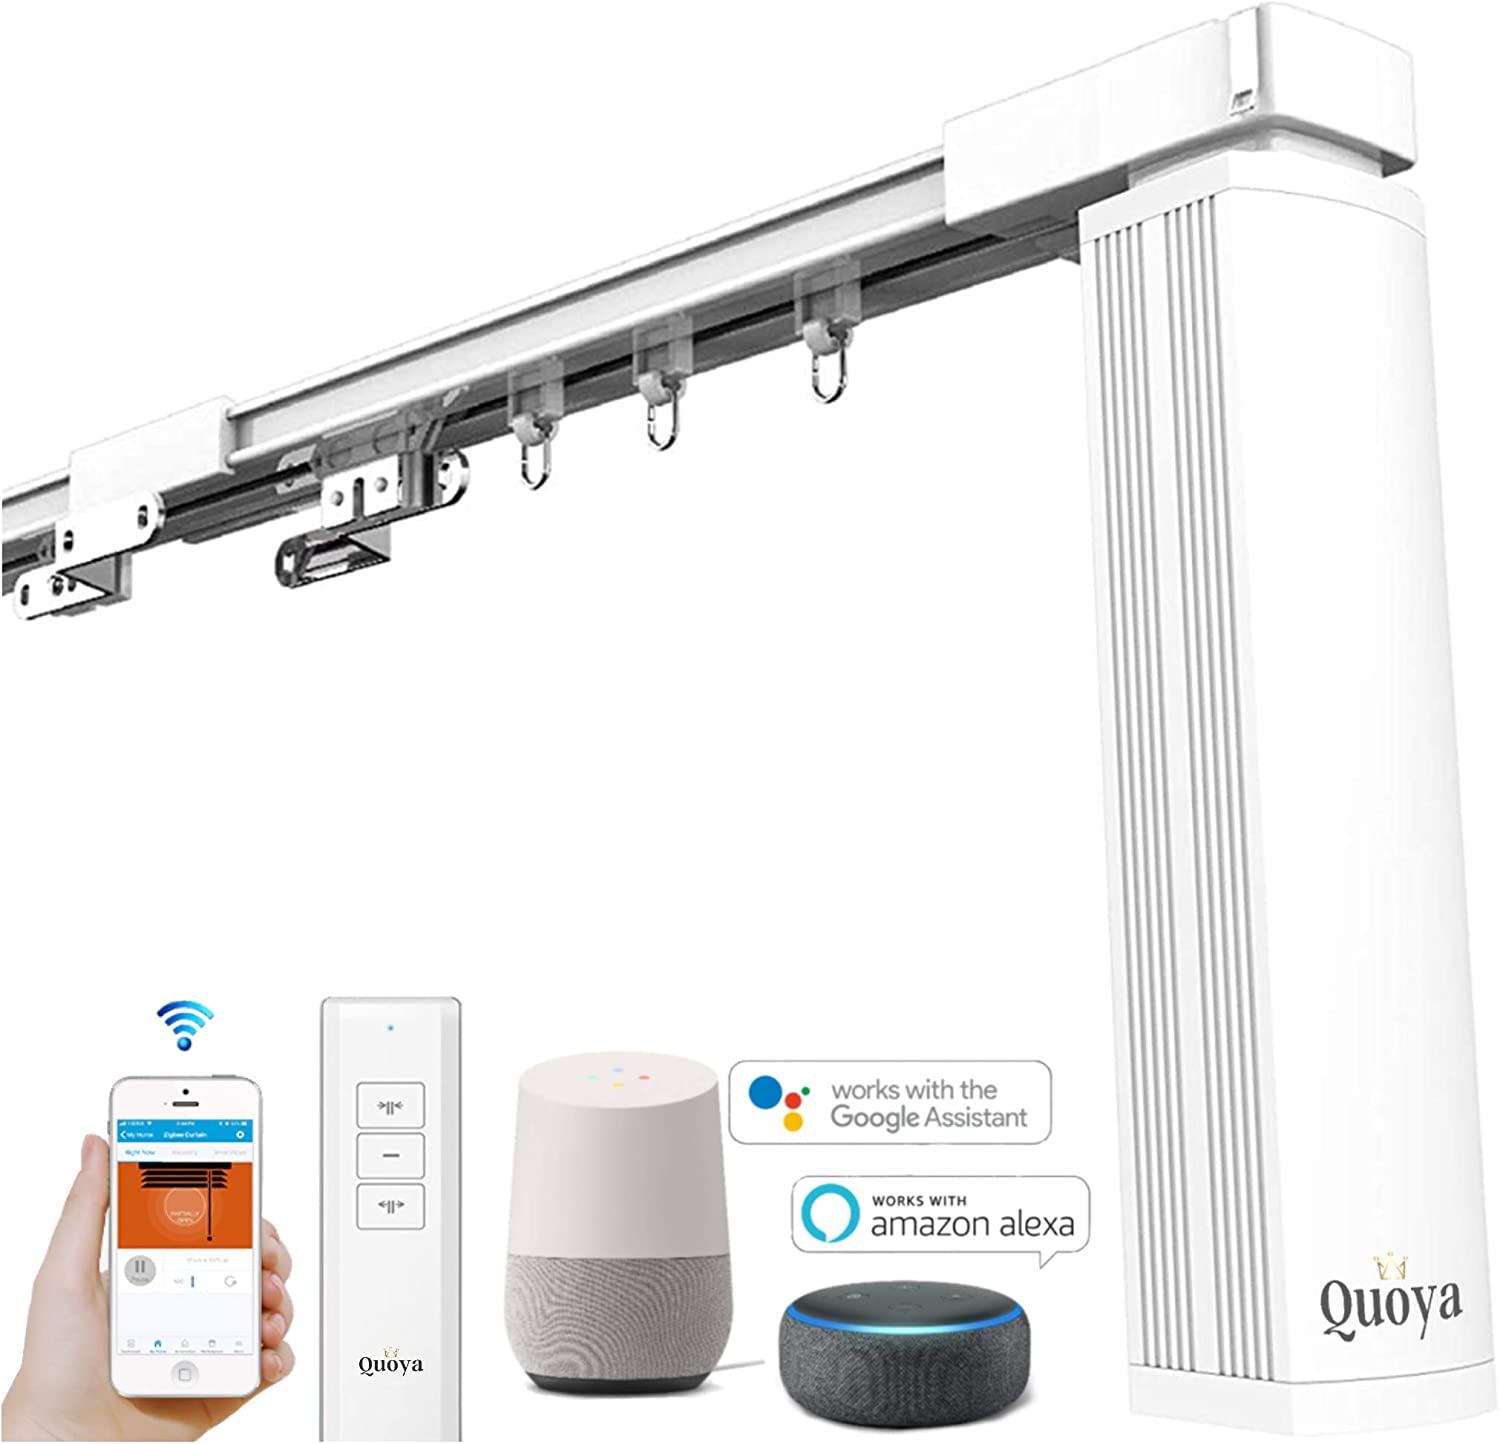 Quoya Curtains System, Electric Curtain track with Automated Rail Motor with App, Voice, Remote Control 【up to 3.2M- Motorised and adjustable tracks】 Up to 3 metres QL-5000